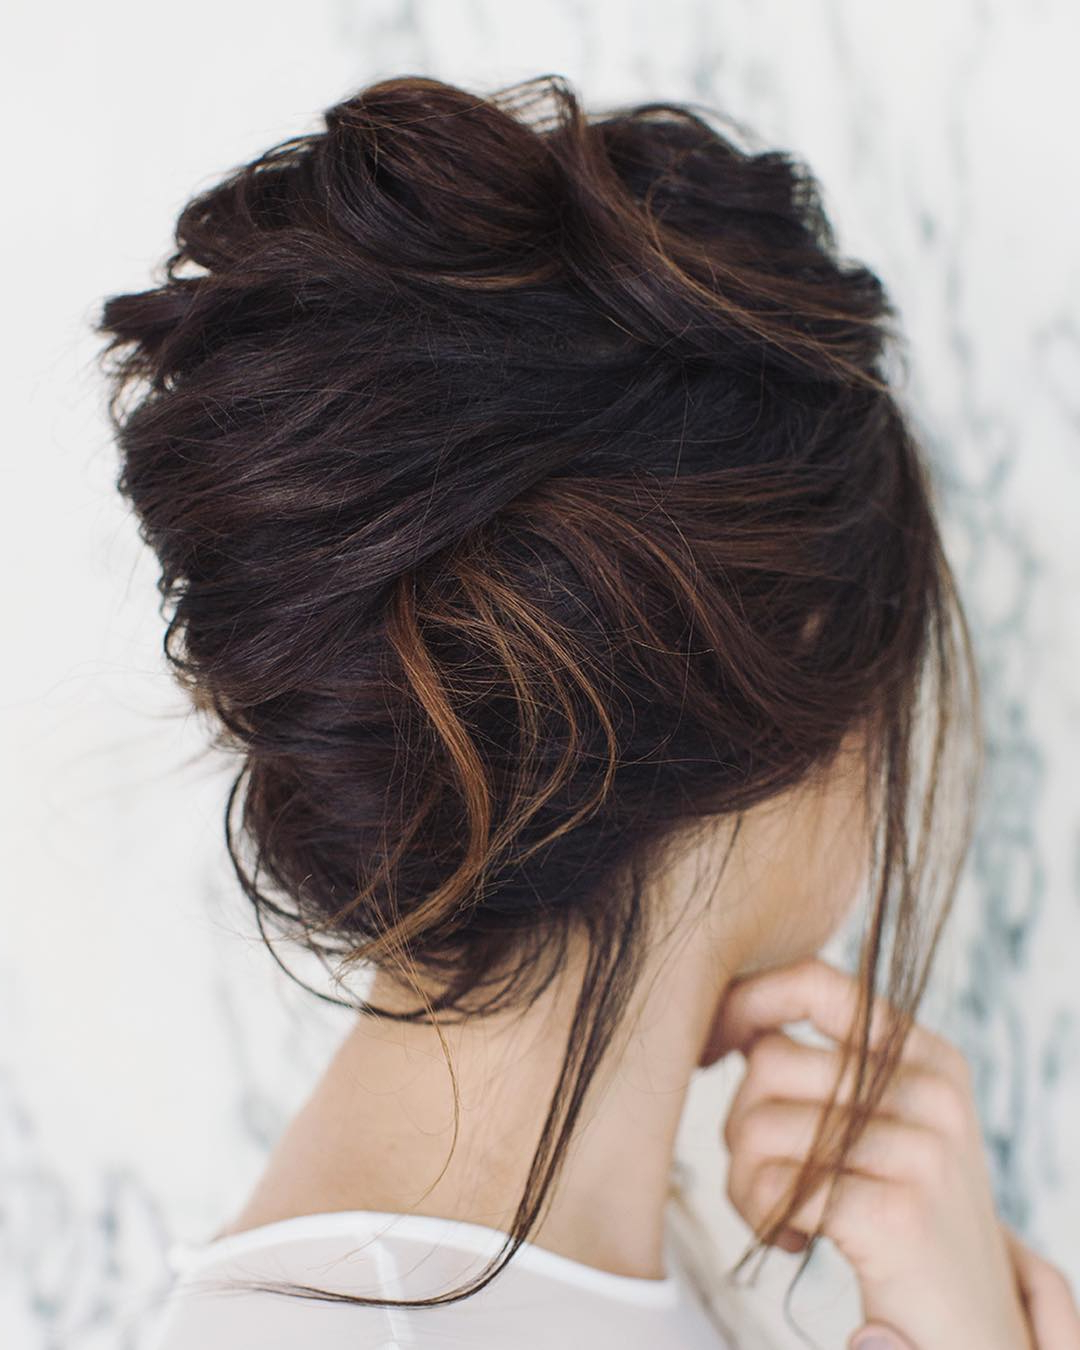 Popular High Volume Donut Bun Updo Hairstyles For 10 Gorgeous Prom Updos For Long Hair, Prom Updo Hairstyles (View 14 of 20)